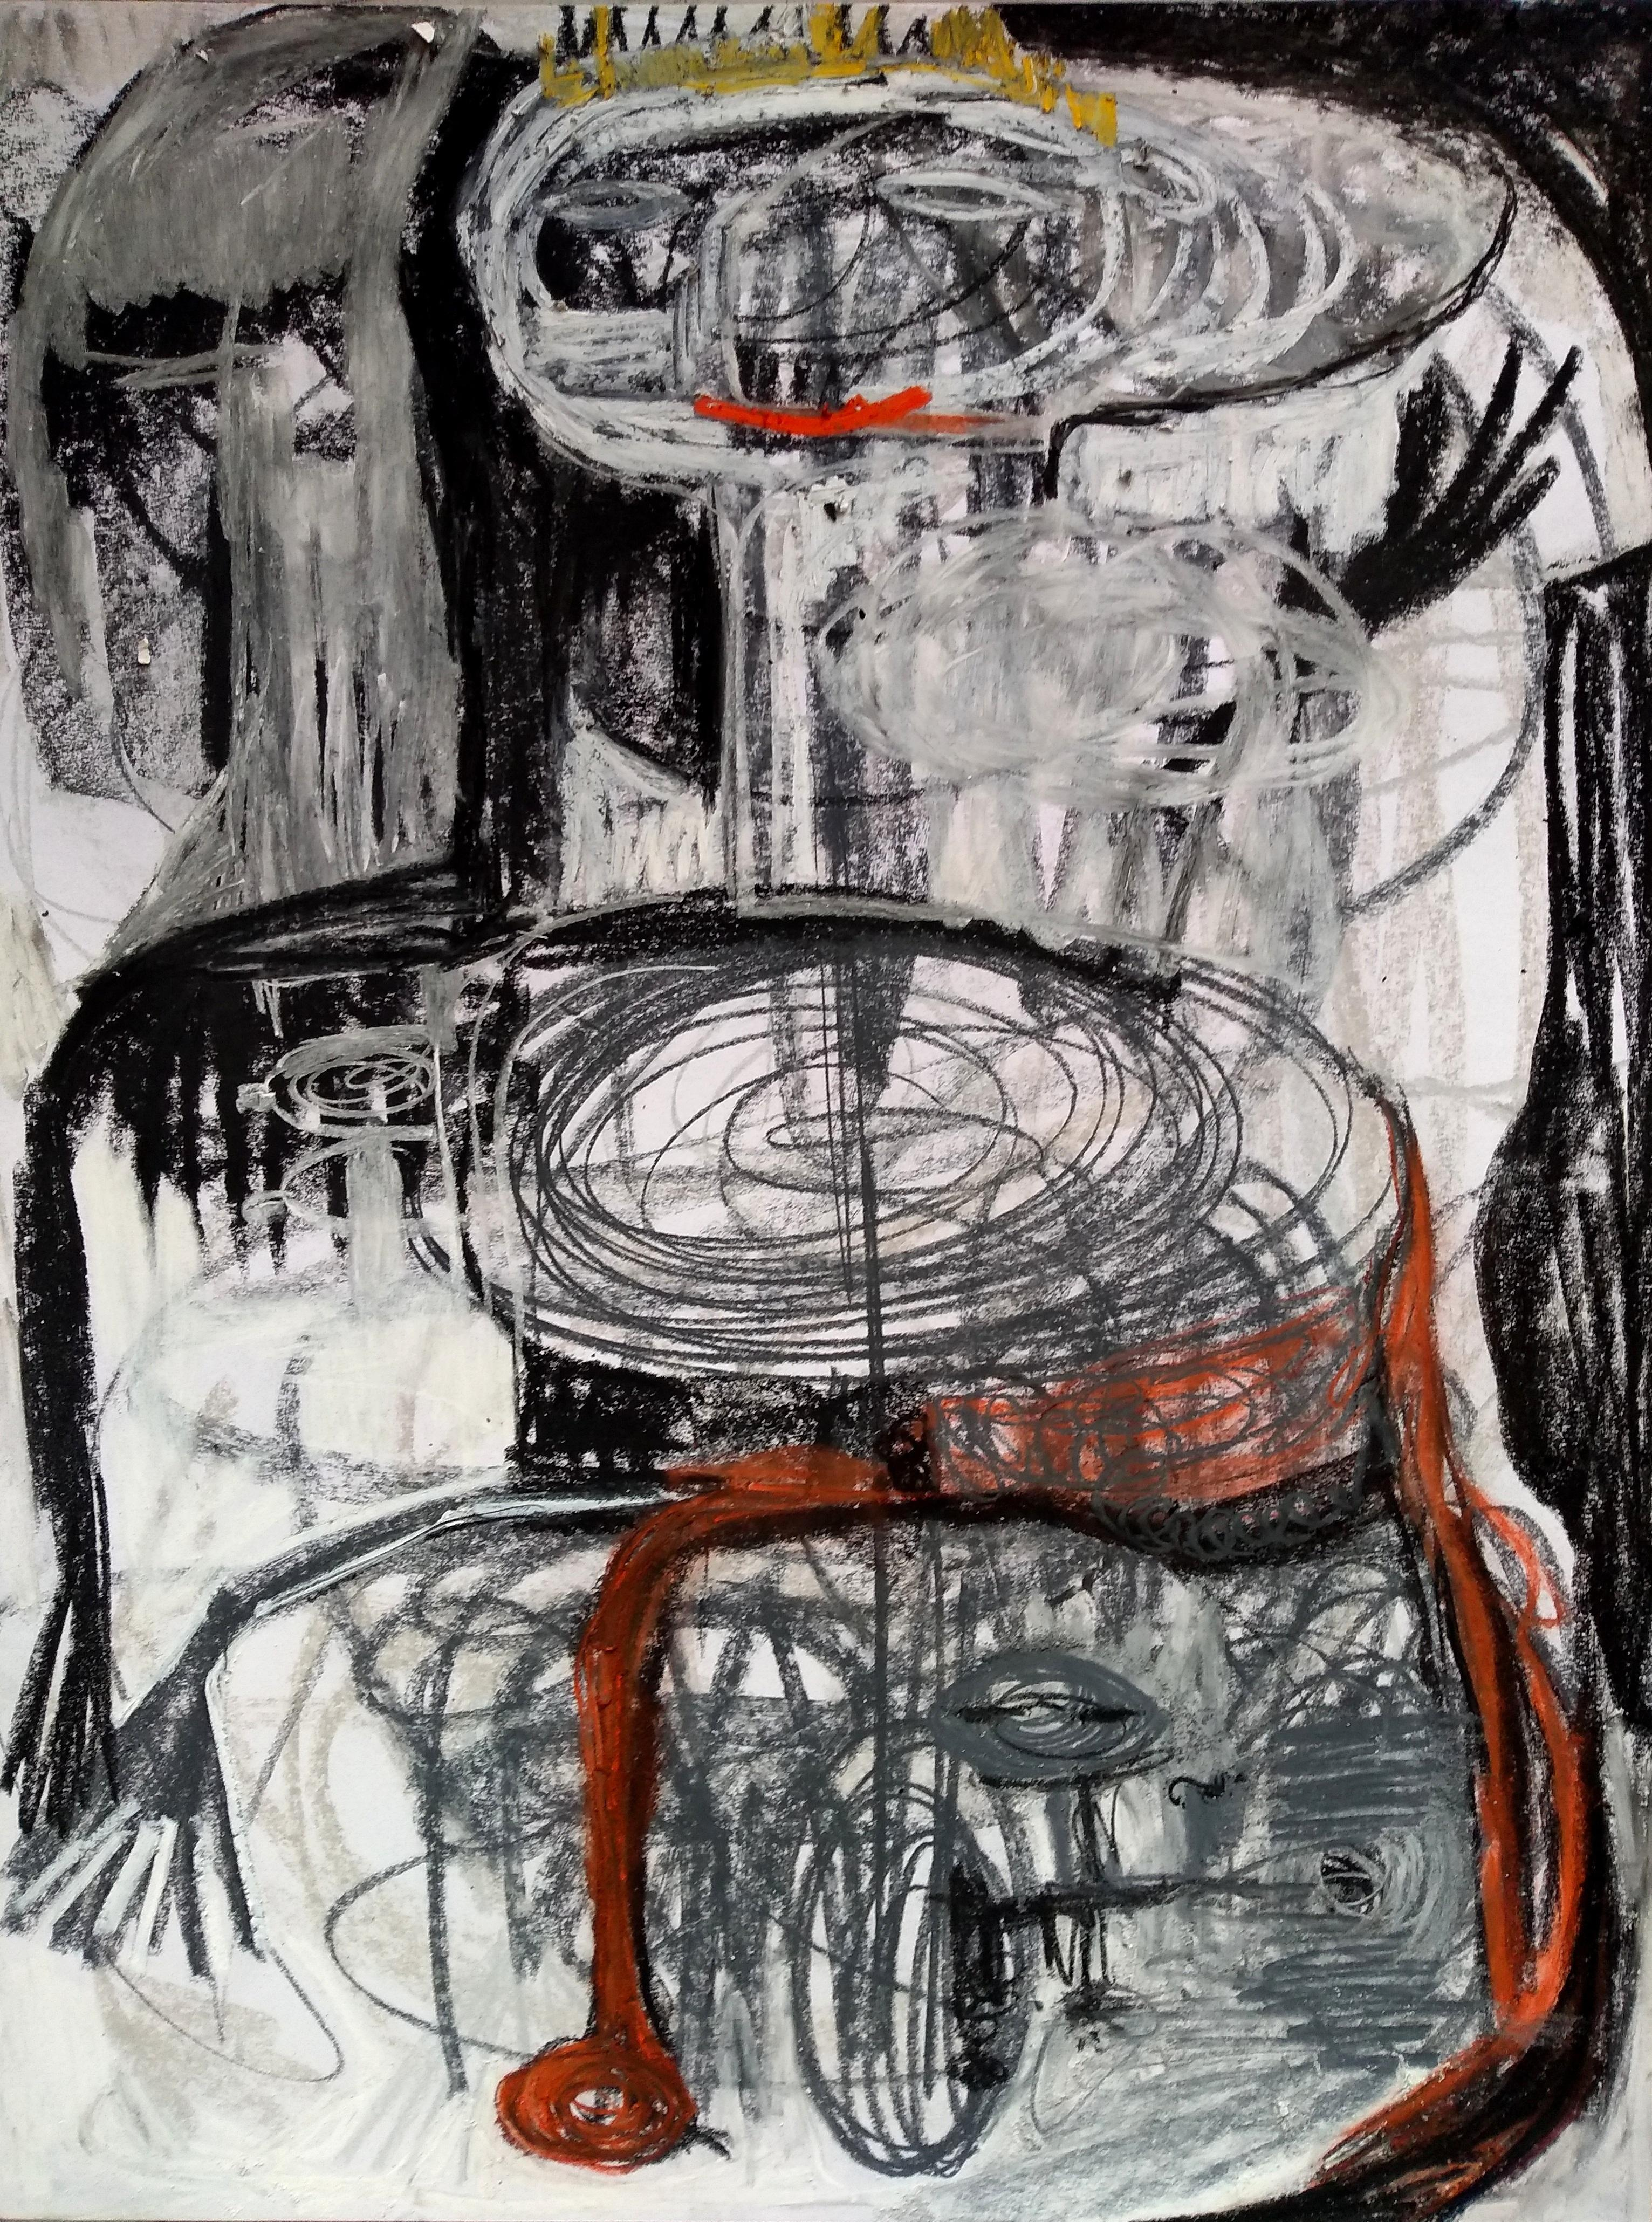 The owner II - Parmis Sayous 21st Century drawing, Iranian contemporary painter